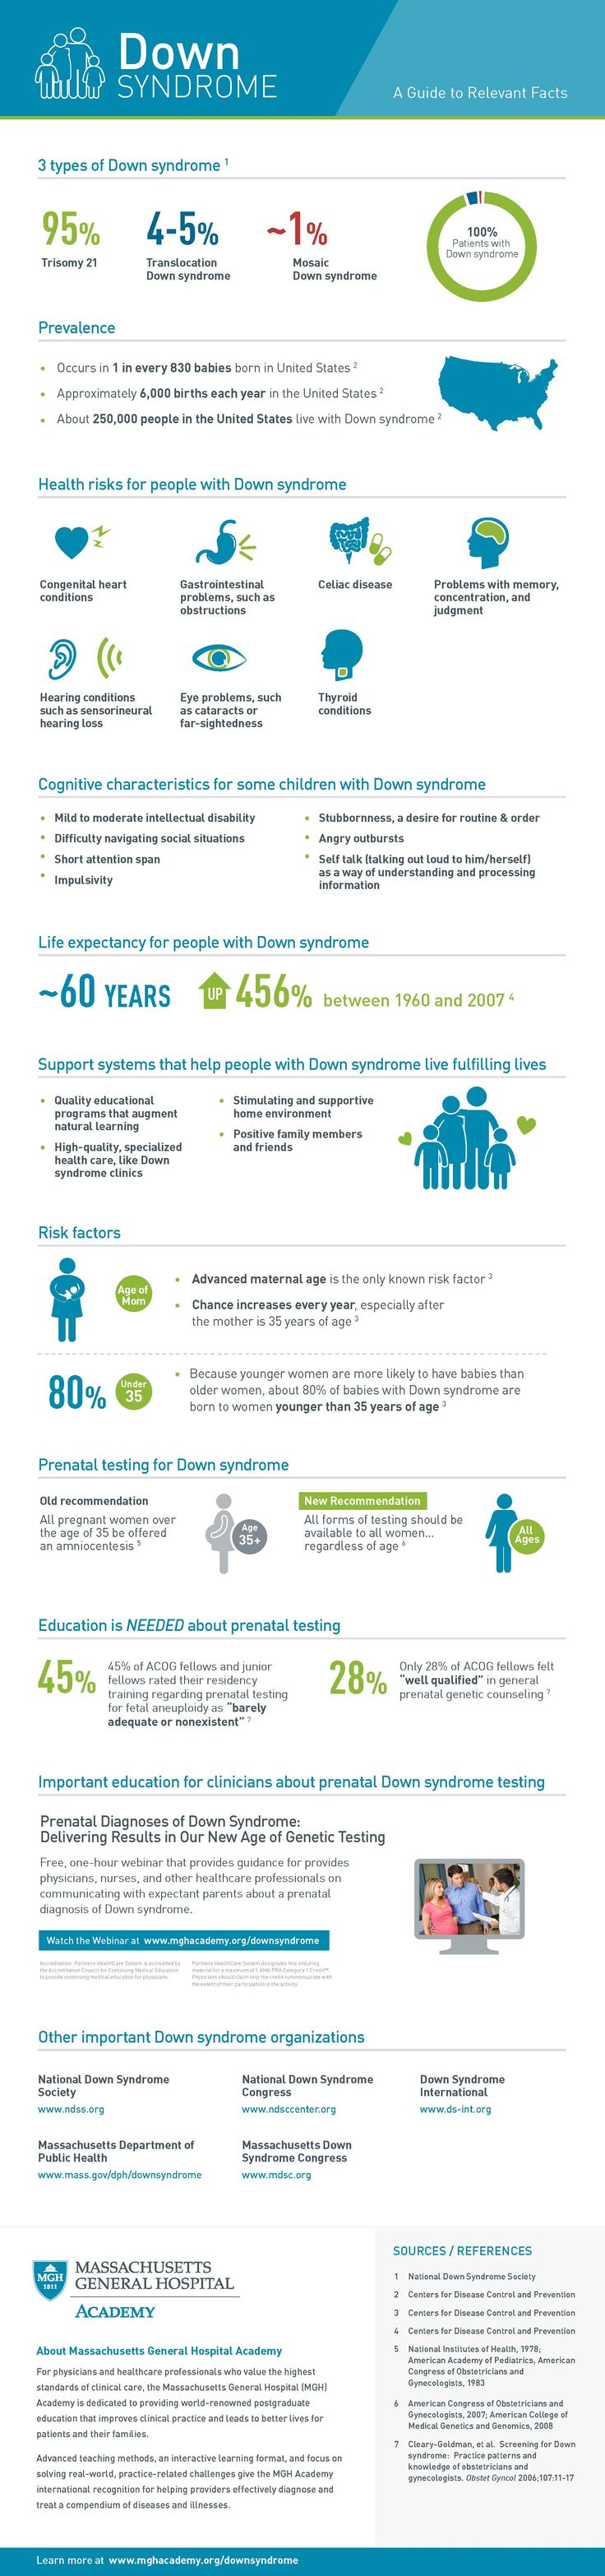 Down Syndrome Facts, Figures and Education #DownSyndrome #ChildrensHealth #Health